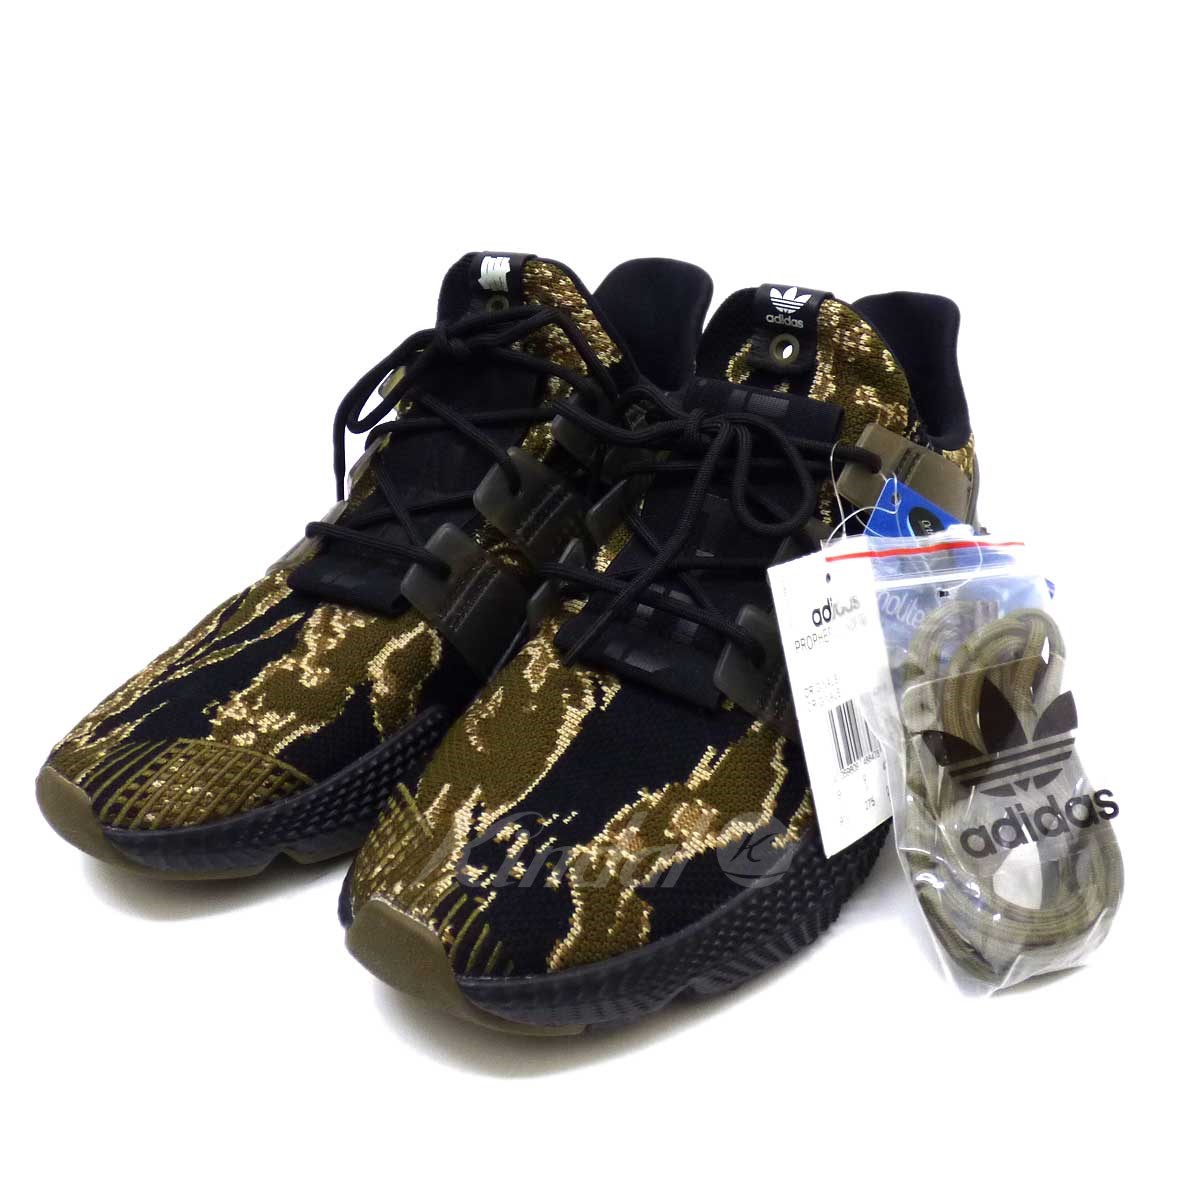 low priced 80db8 111d1 adidas X UNDEFEATED PROPHERE UNDFTD 2,017A/W